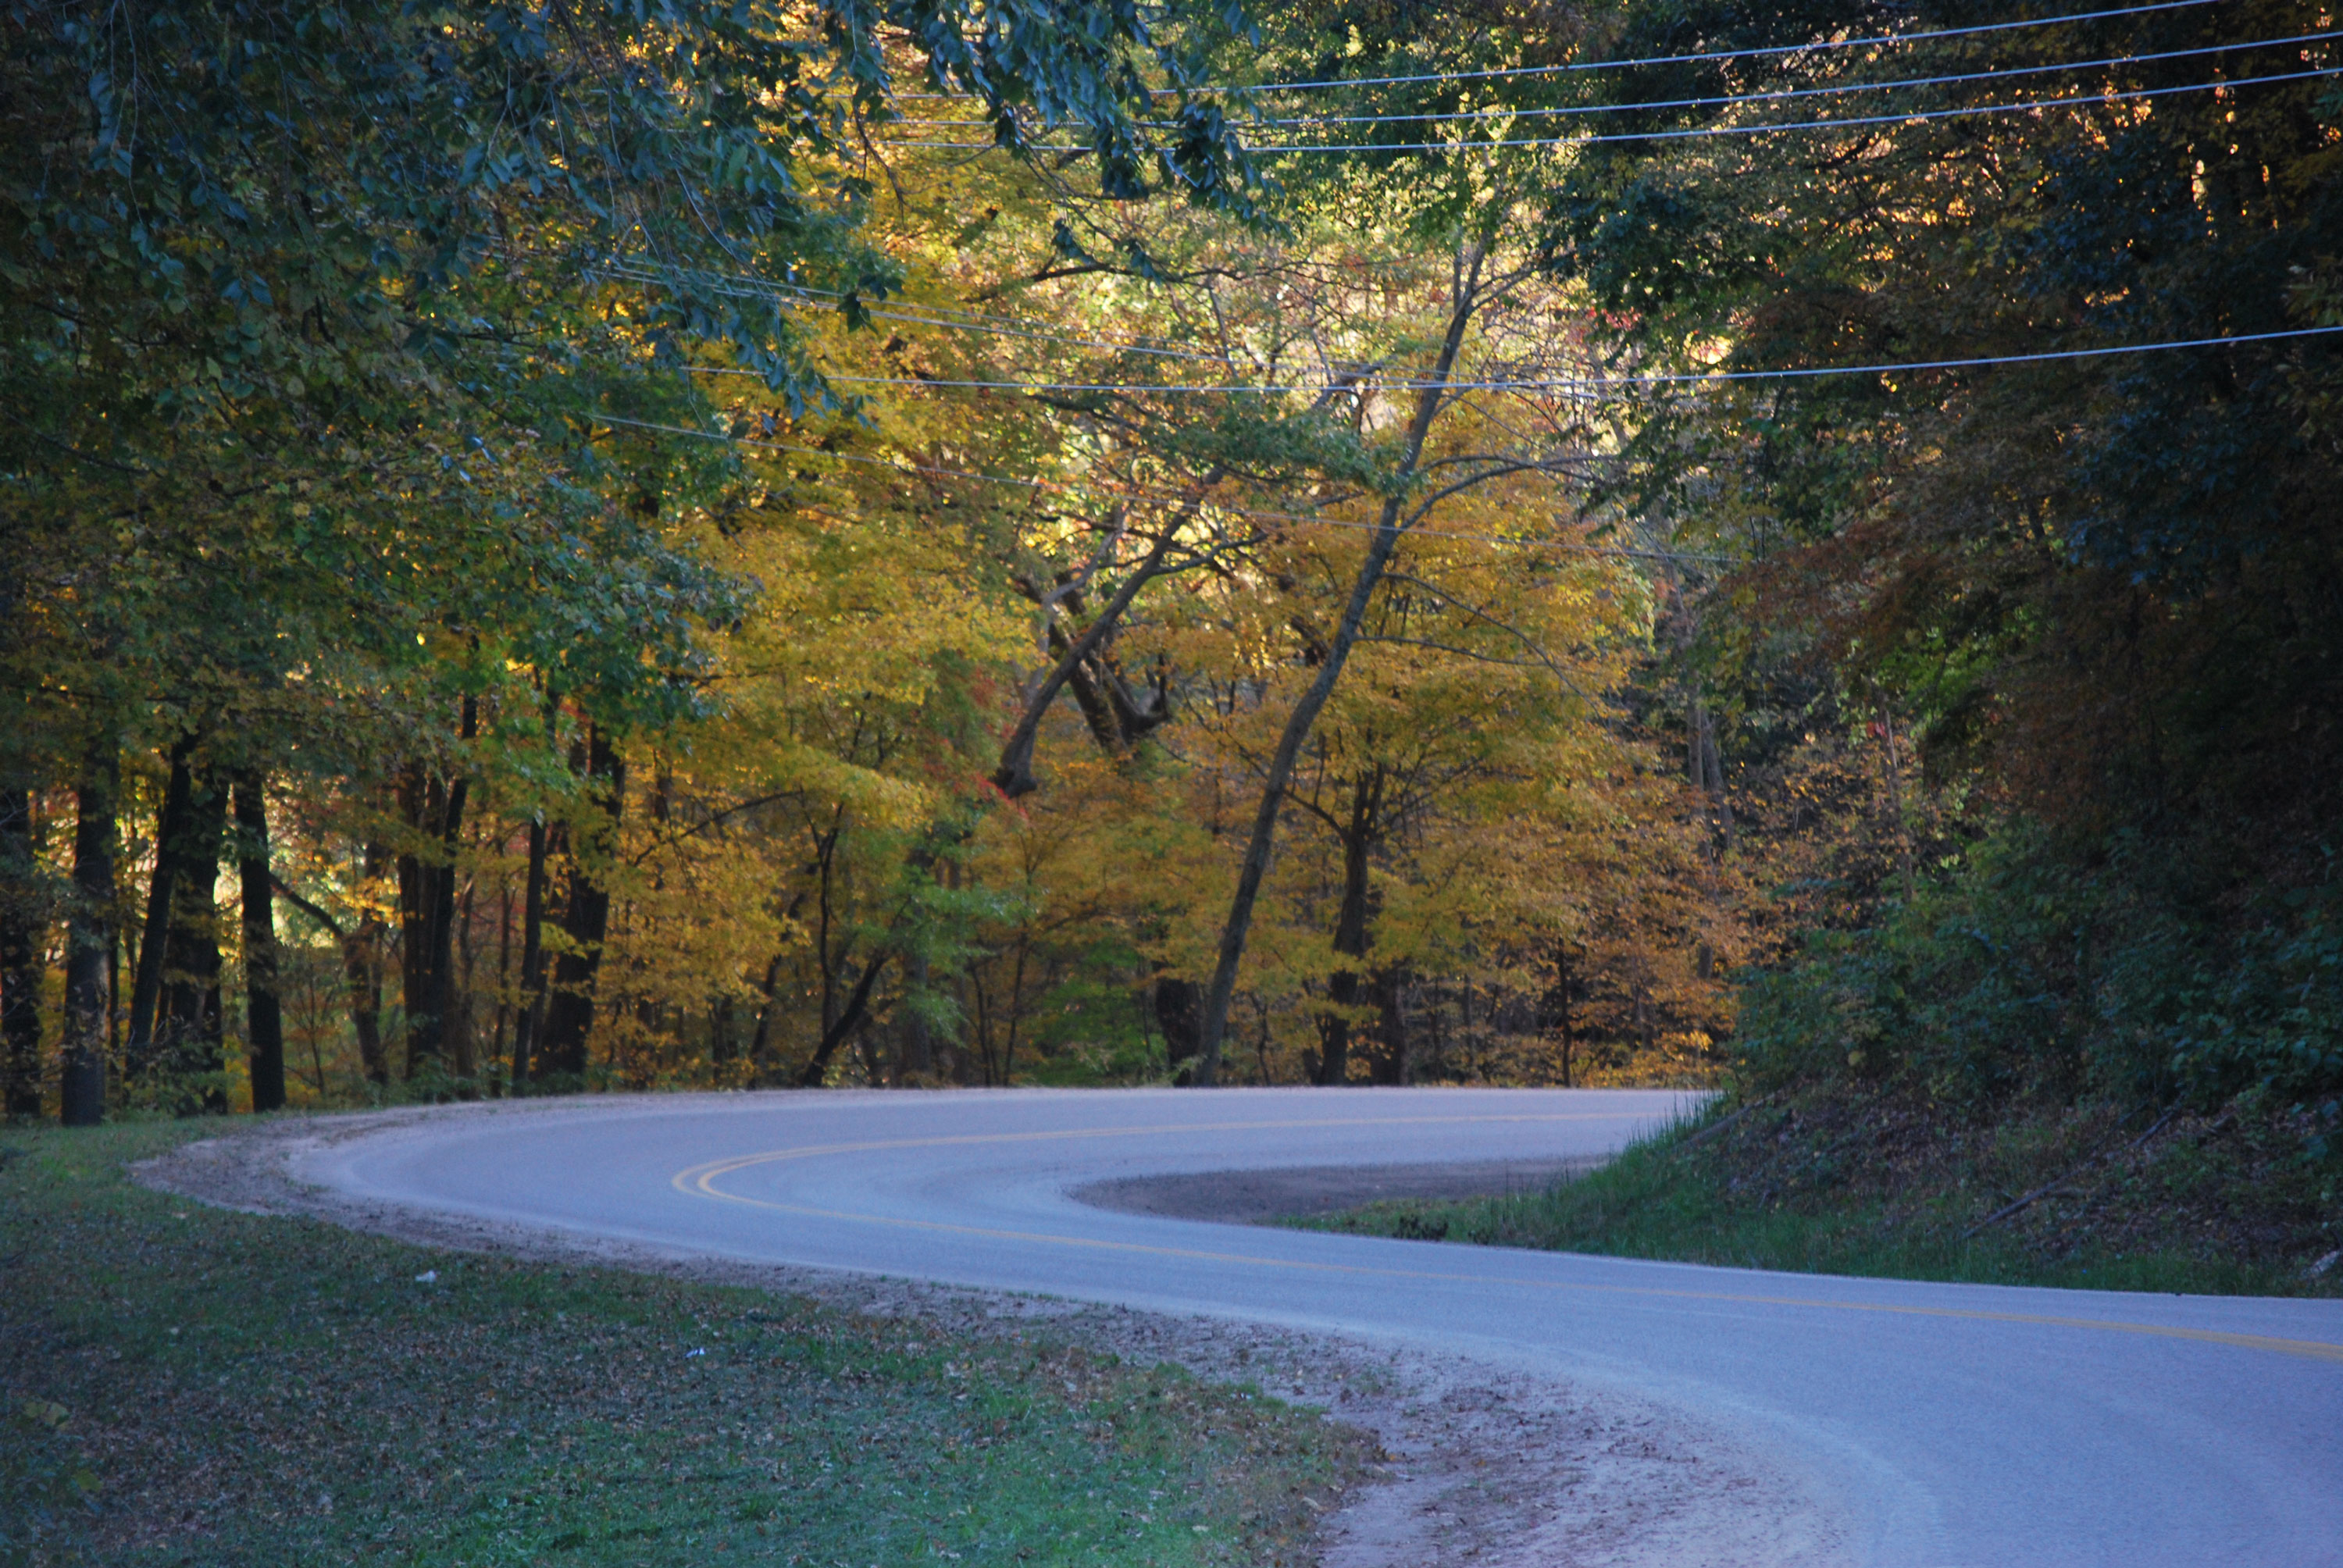 Meandering roads in Sauk County, WIsconsin